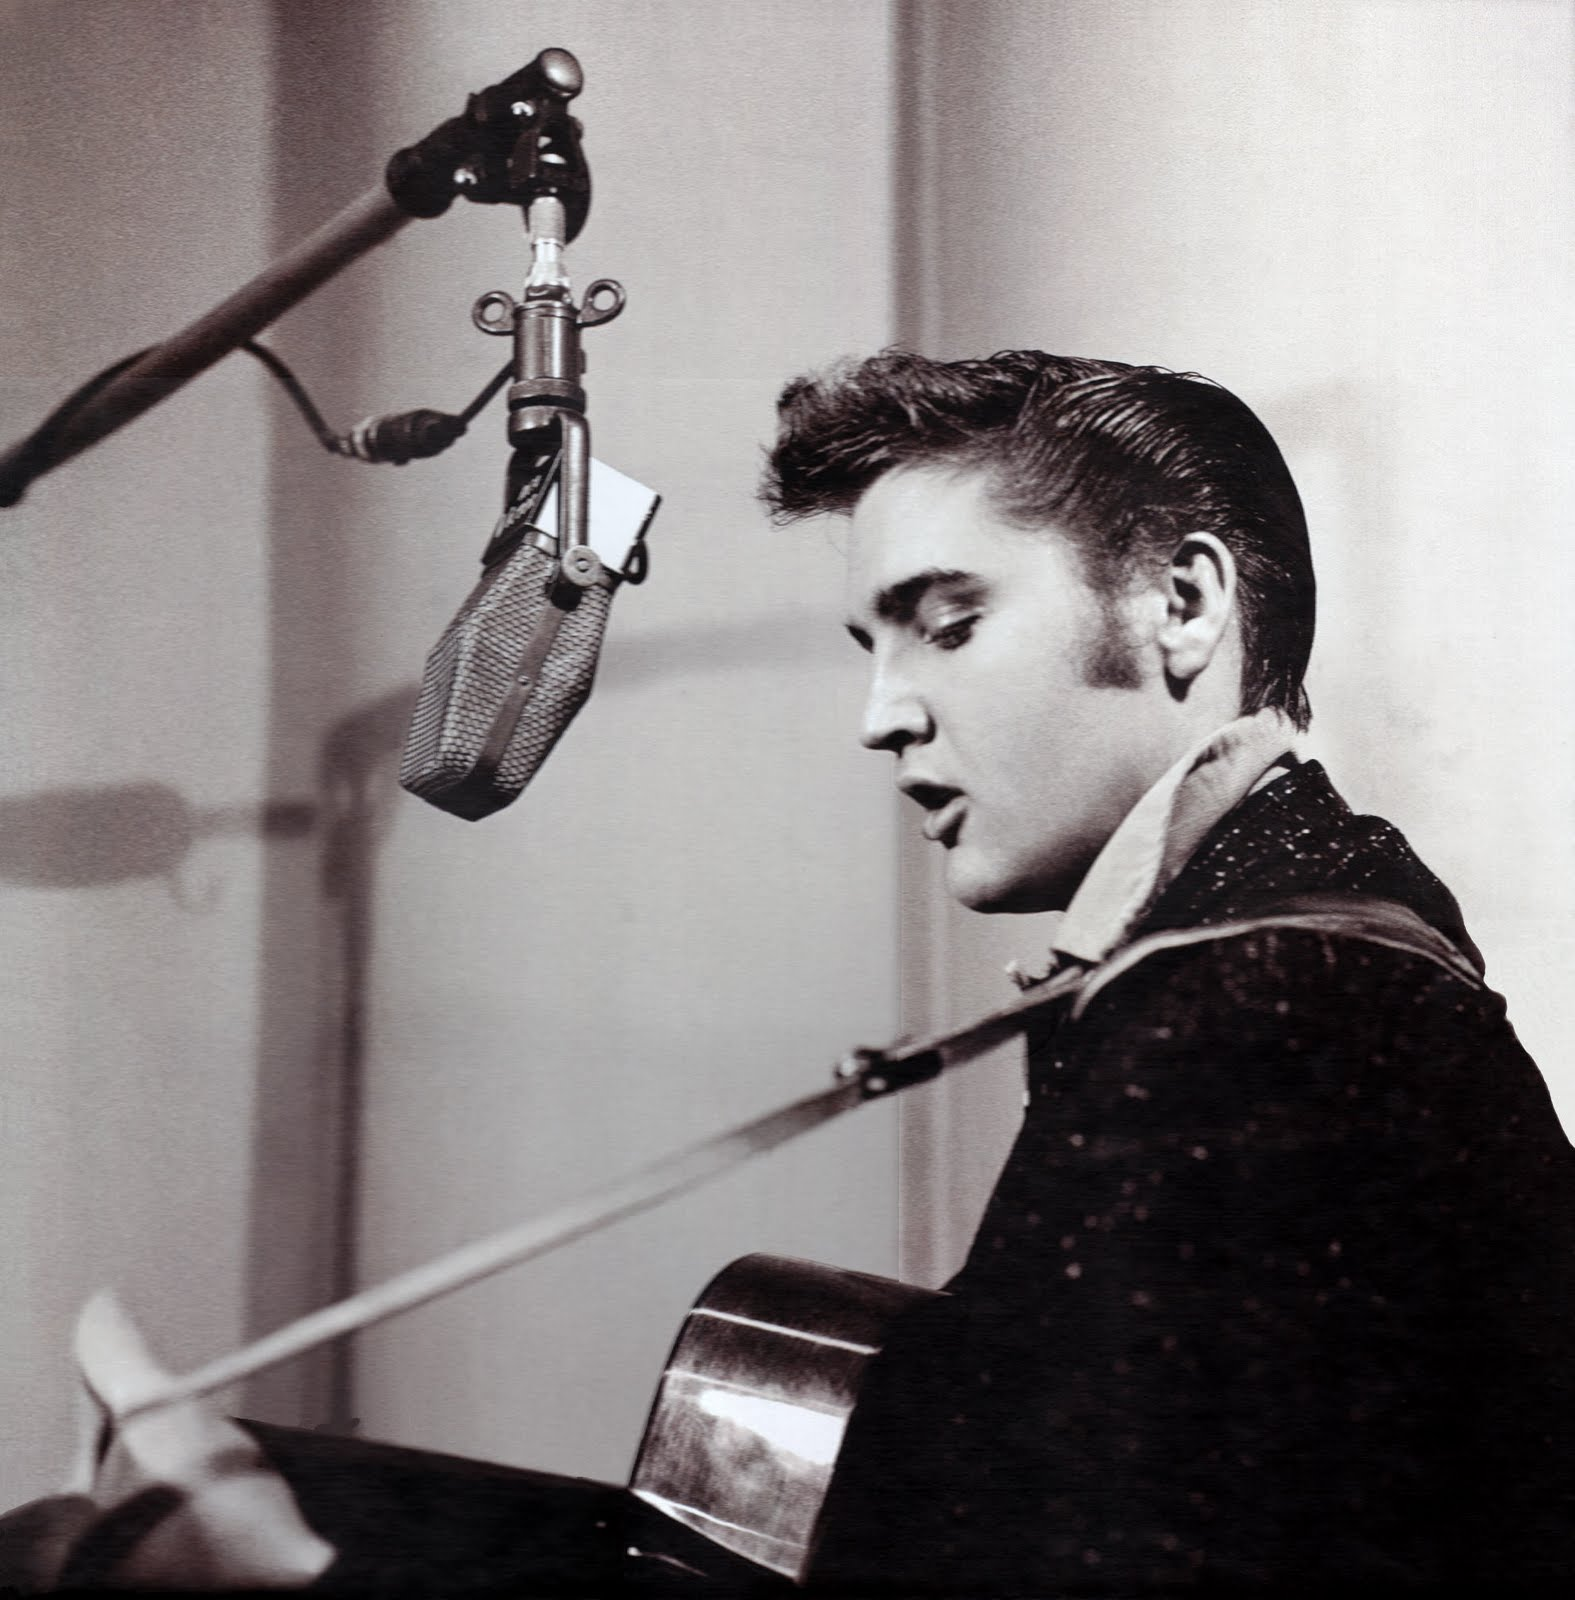 Elvis Presley: That's Alright Mama